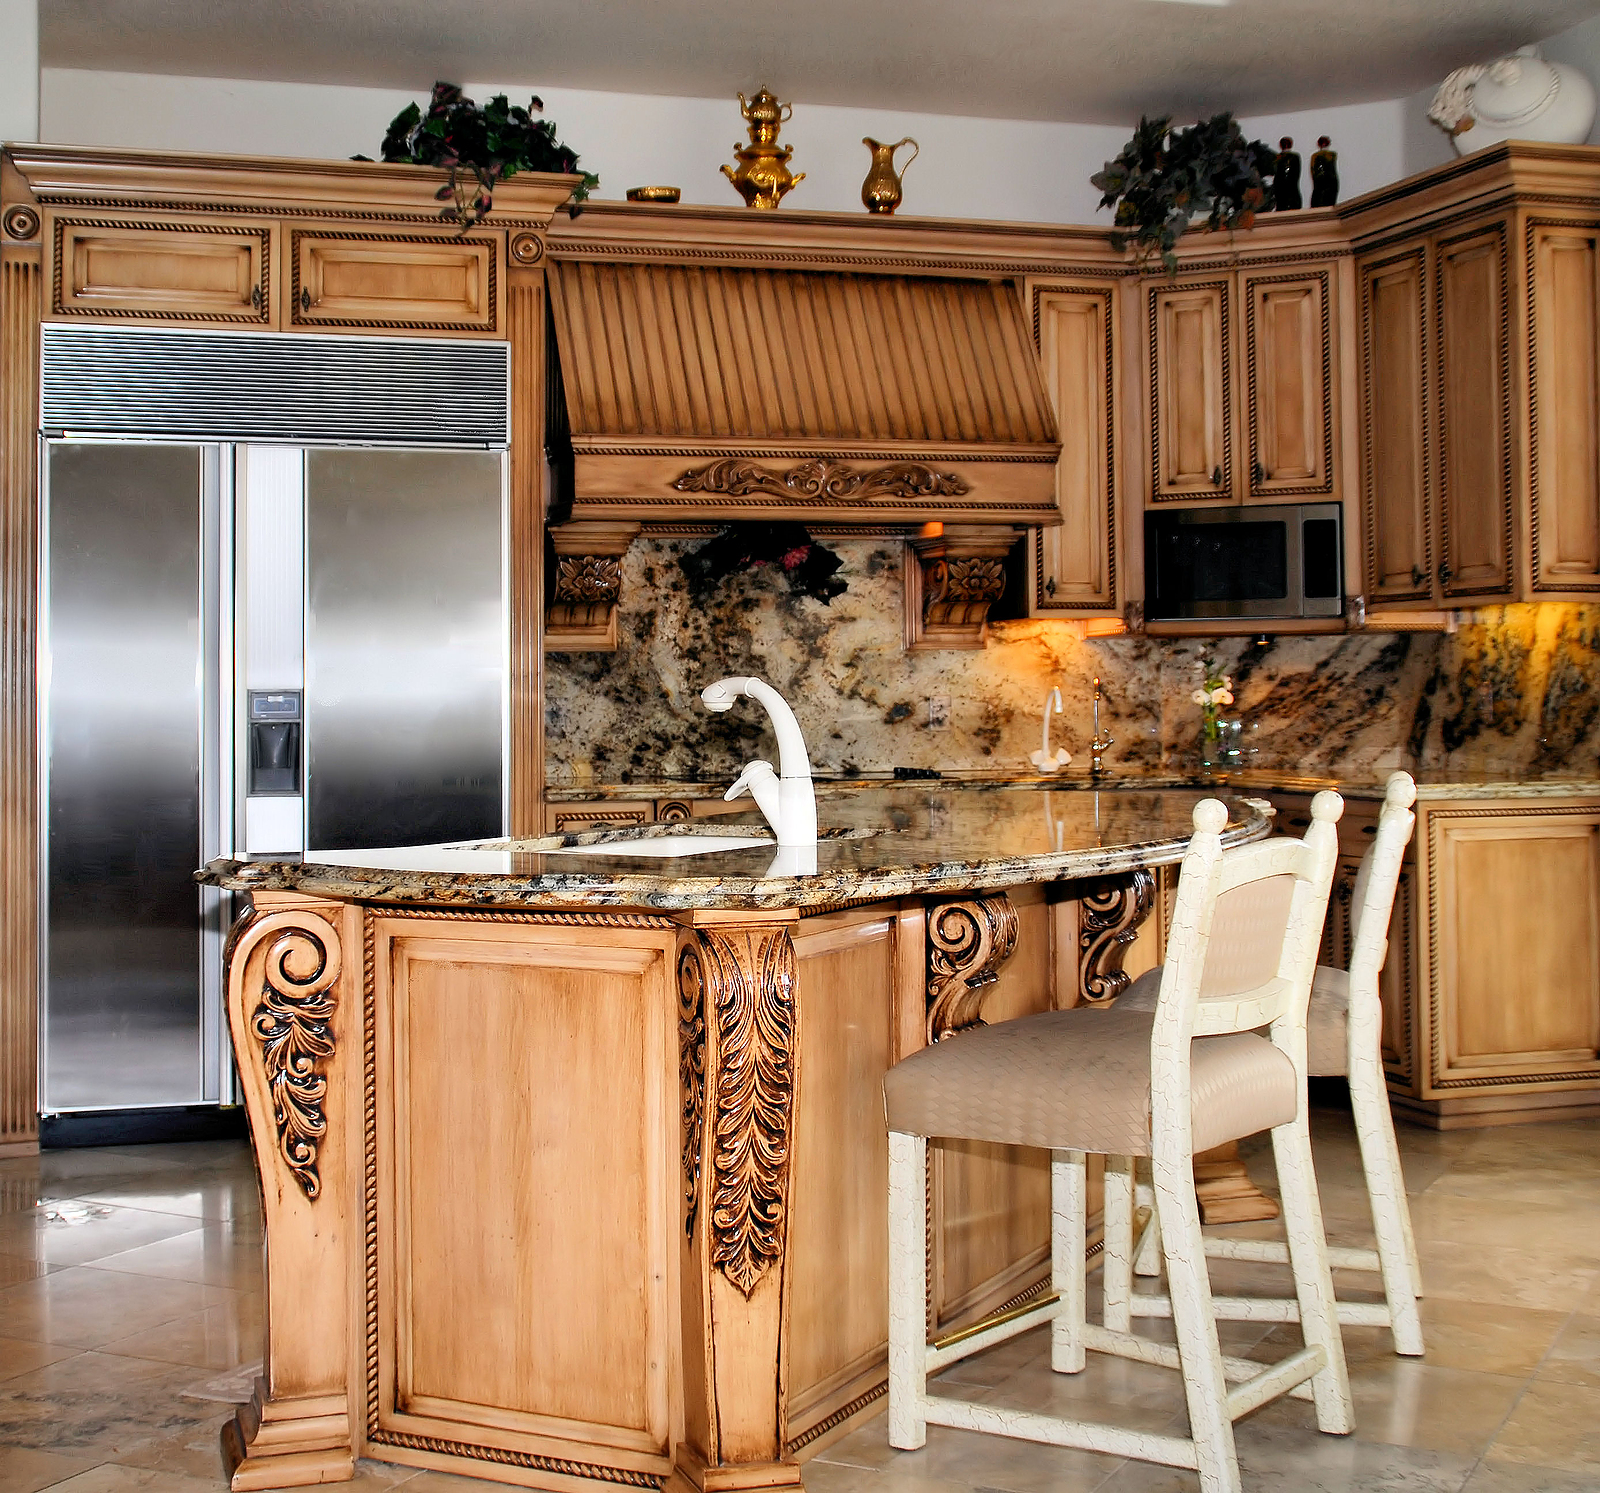 Donco designs is a pompano beach remodeling contractor for Kitchen cabinet renovation ideas